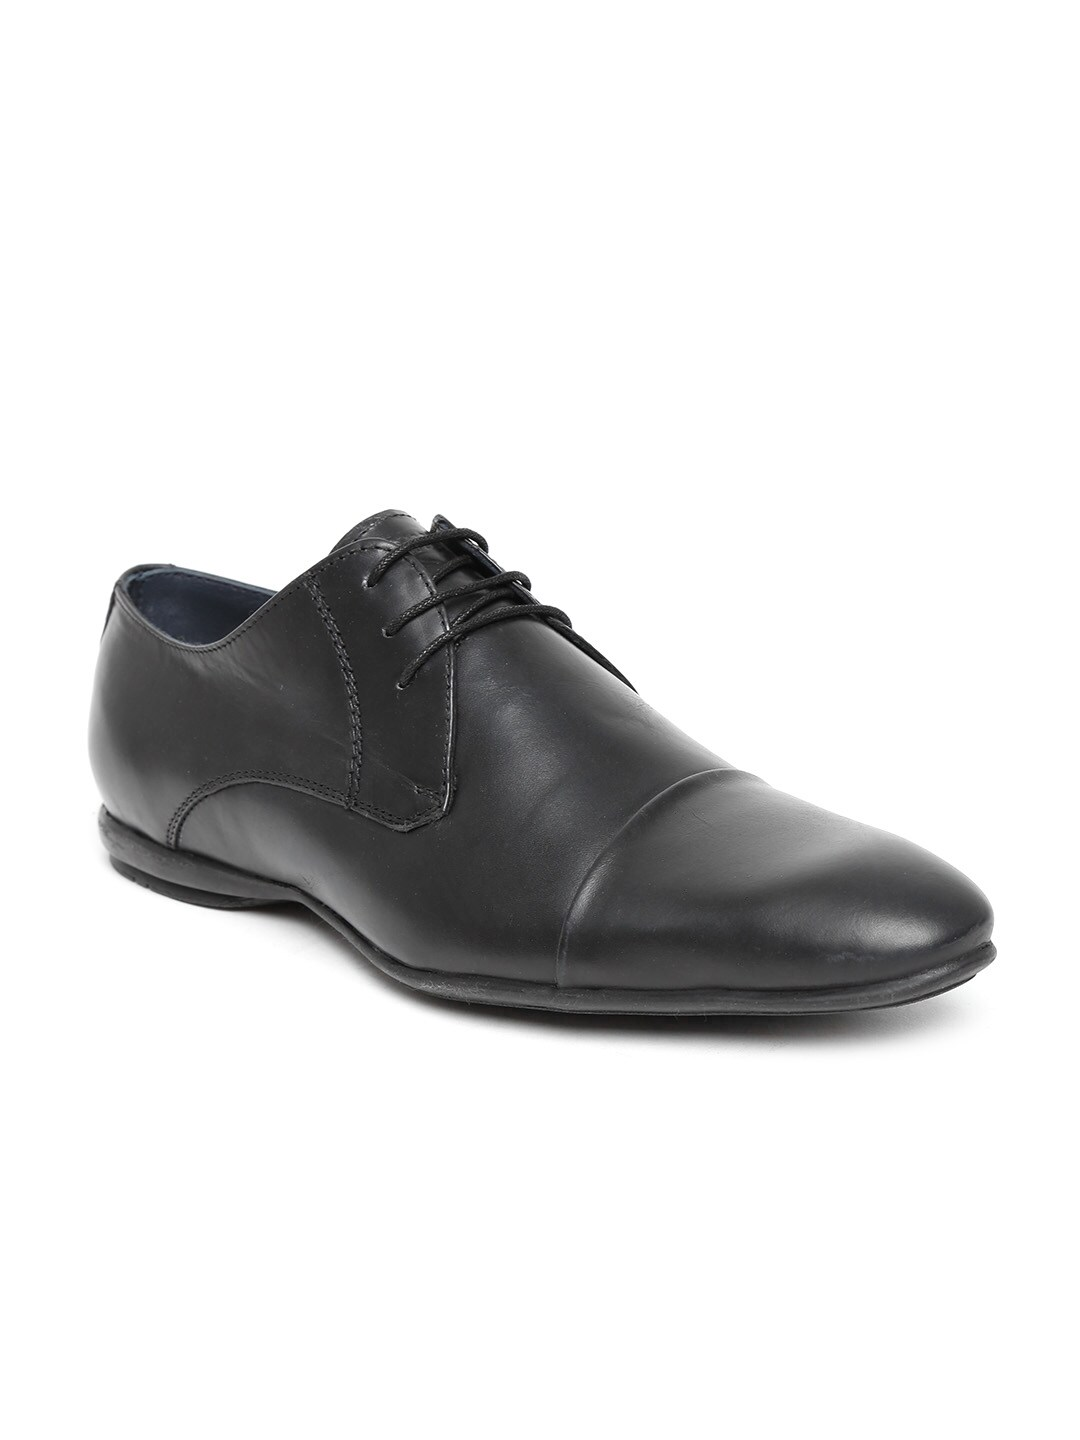 Famozi Famozi Men Black Leather Formal Shoes